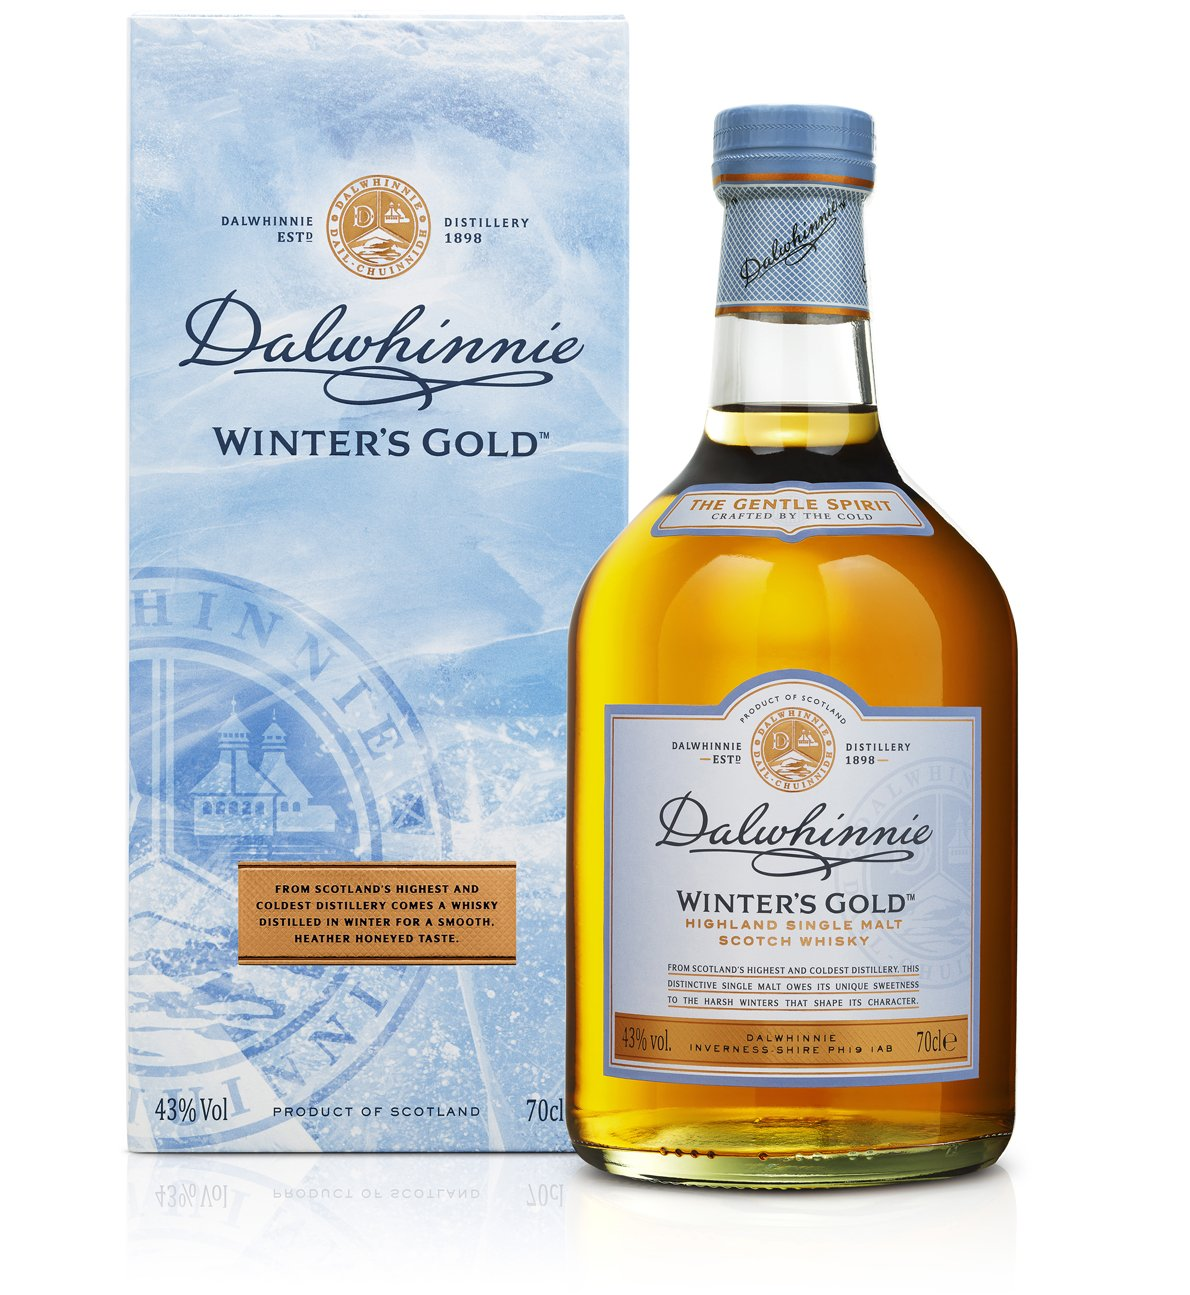 Dalwhinnie Winters Gold Highland Single Malt Scotch Whisky (1 x 0.7 ...